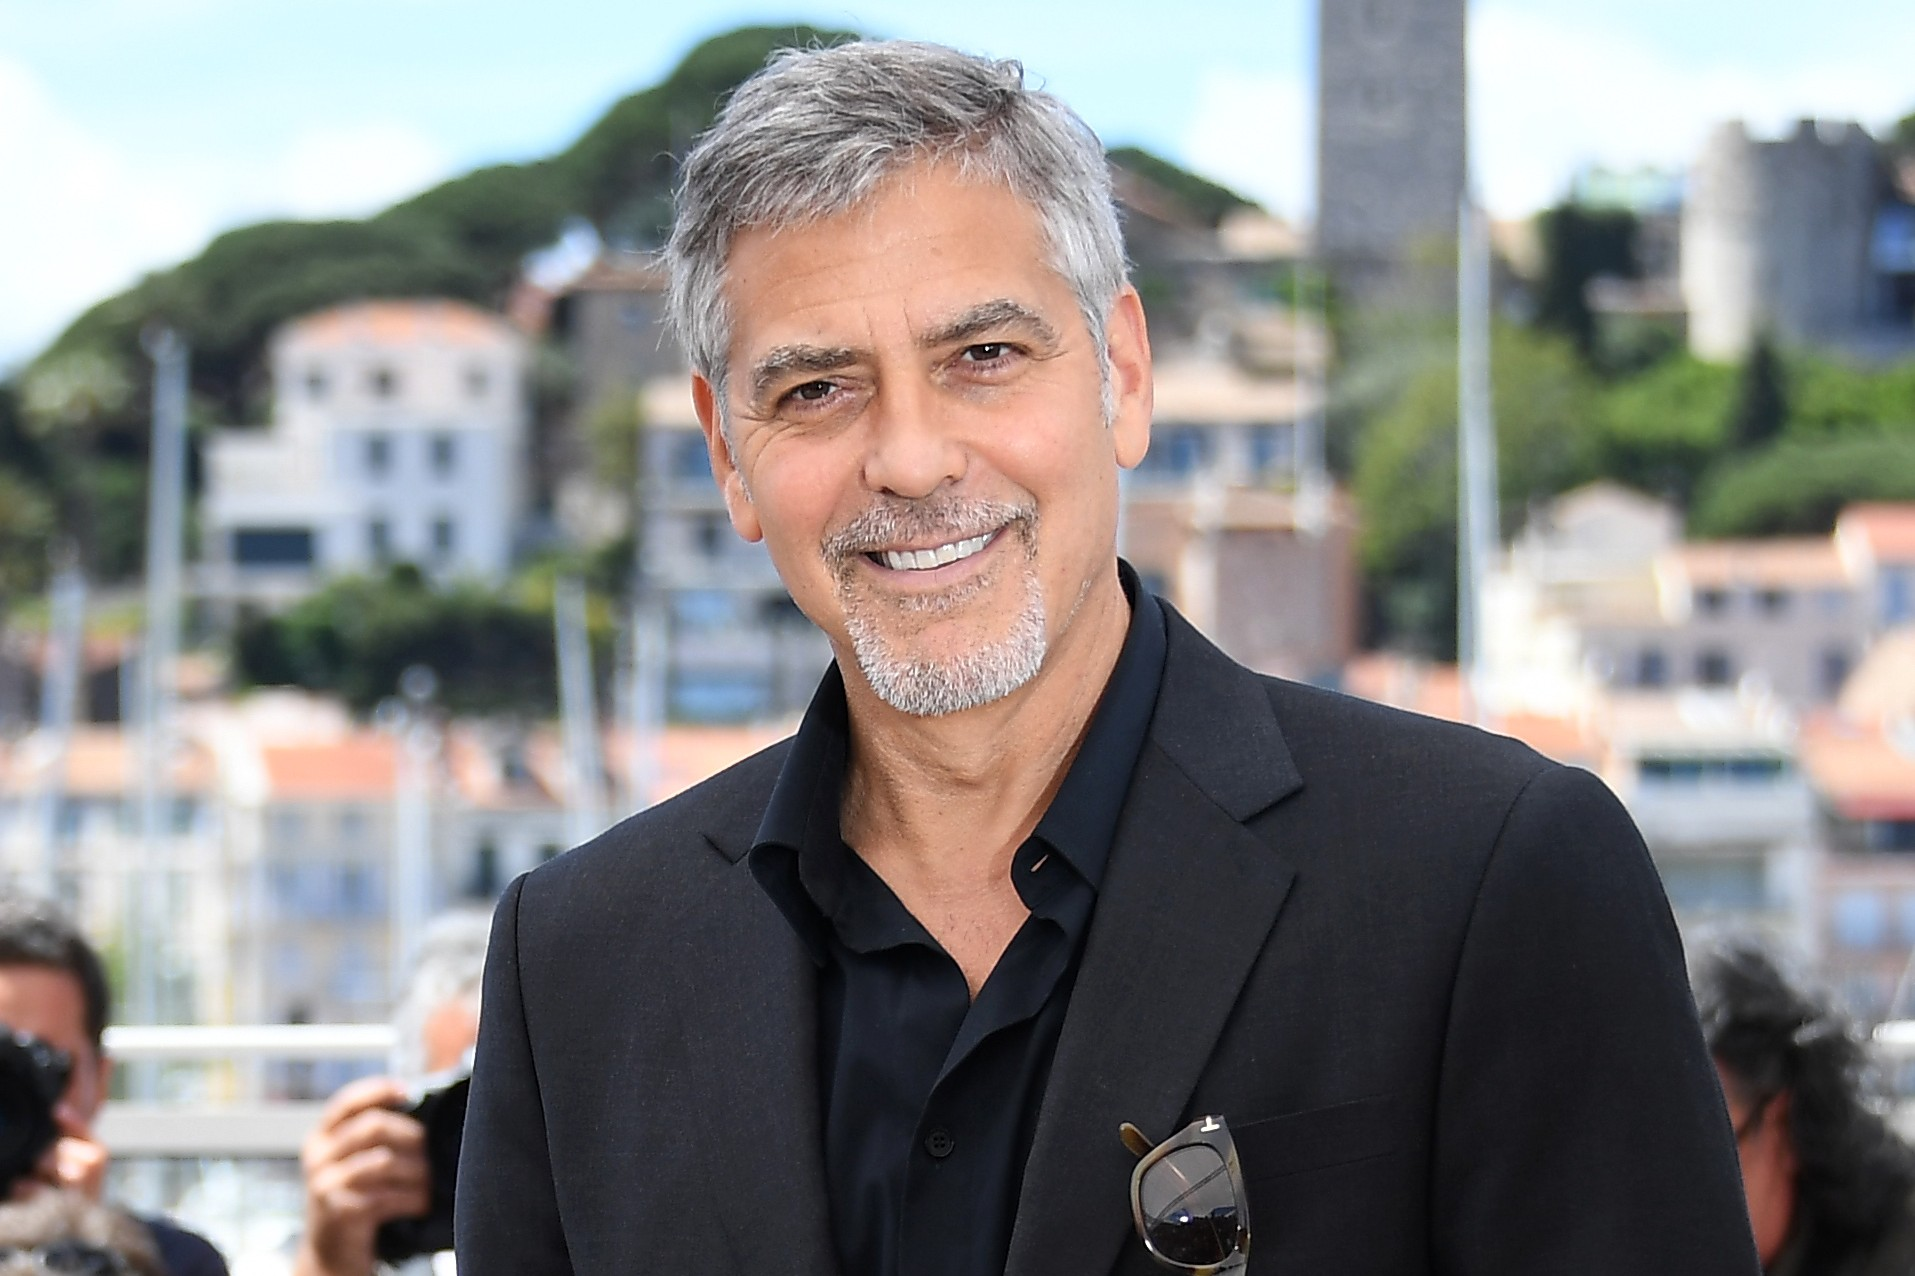 George Clooney short haircuts and beards for men 2018